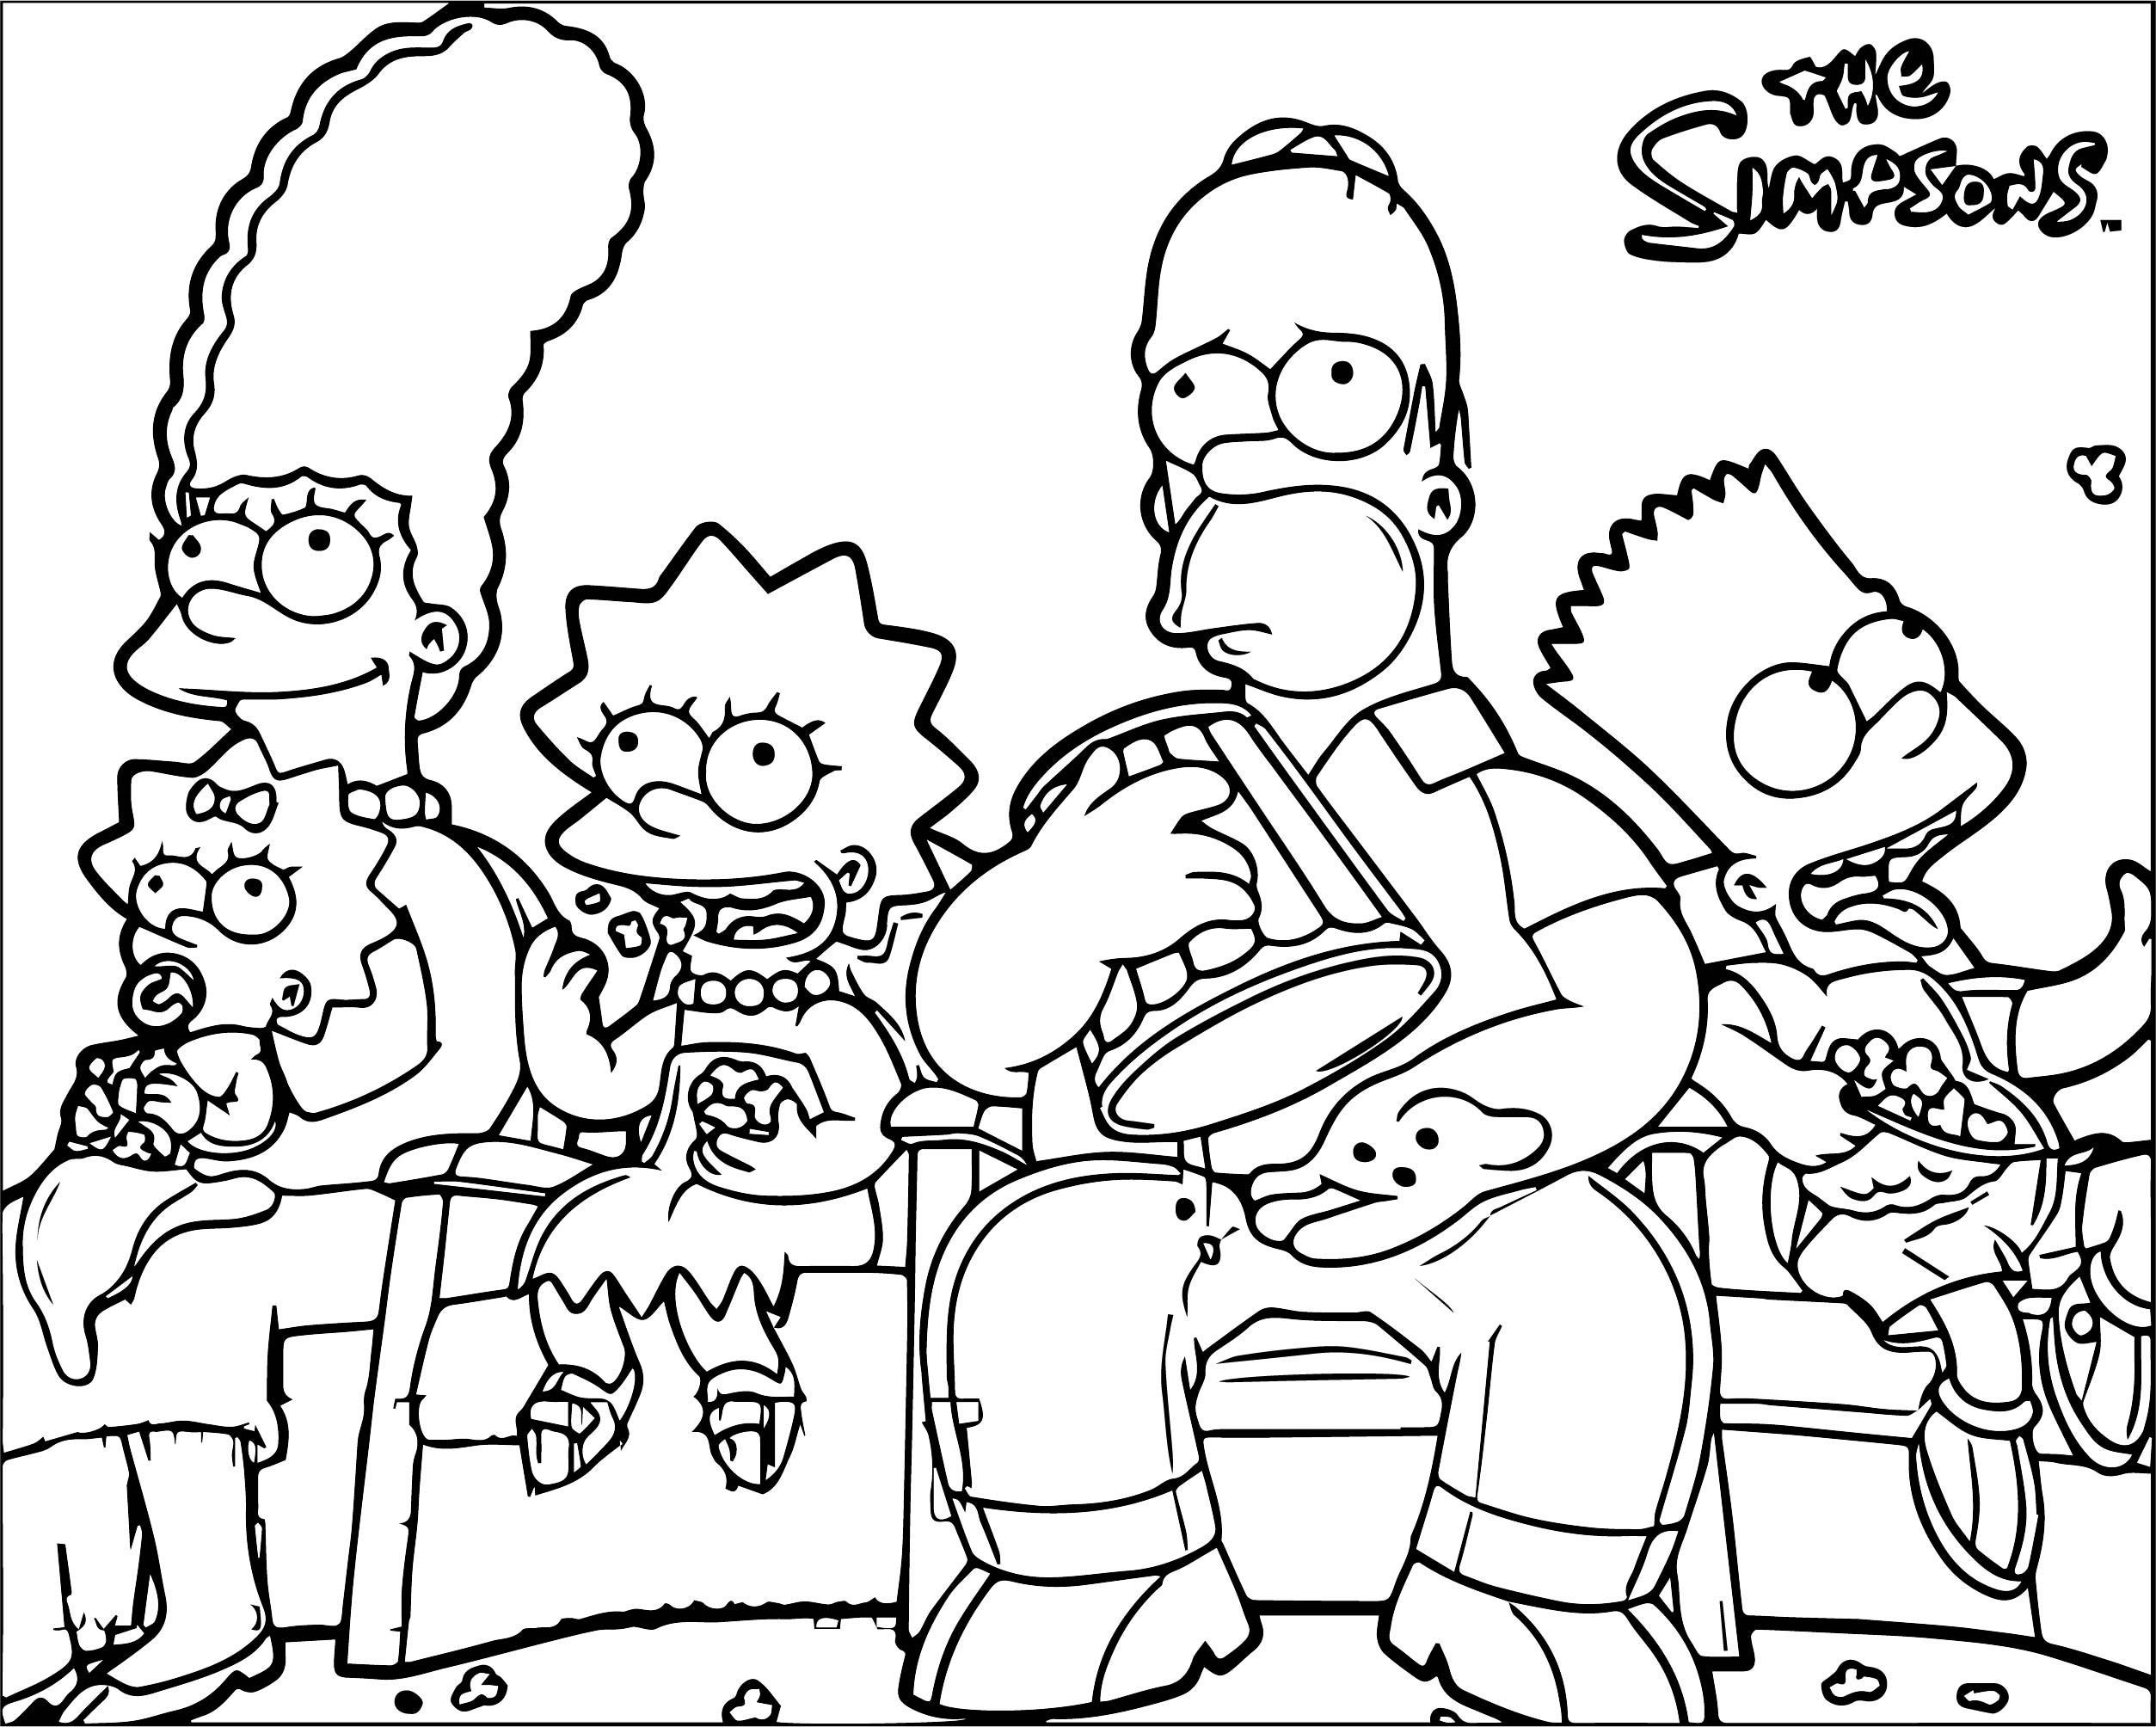 The Simpsons Coloring Page 234